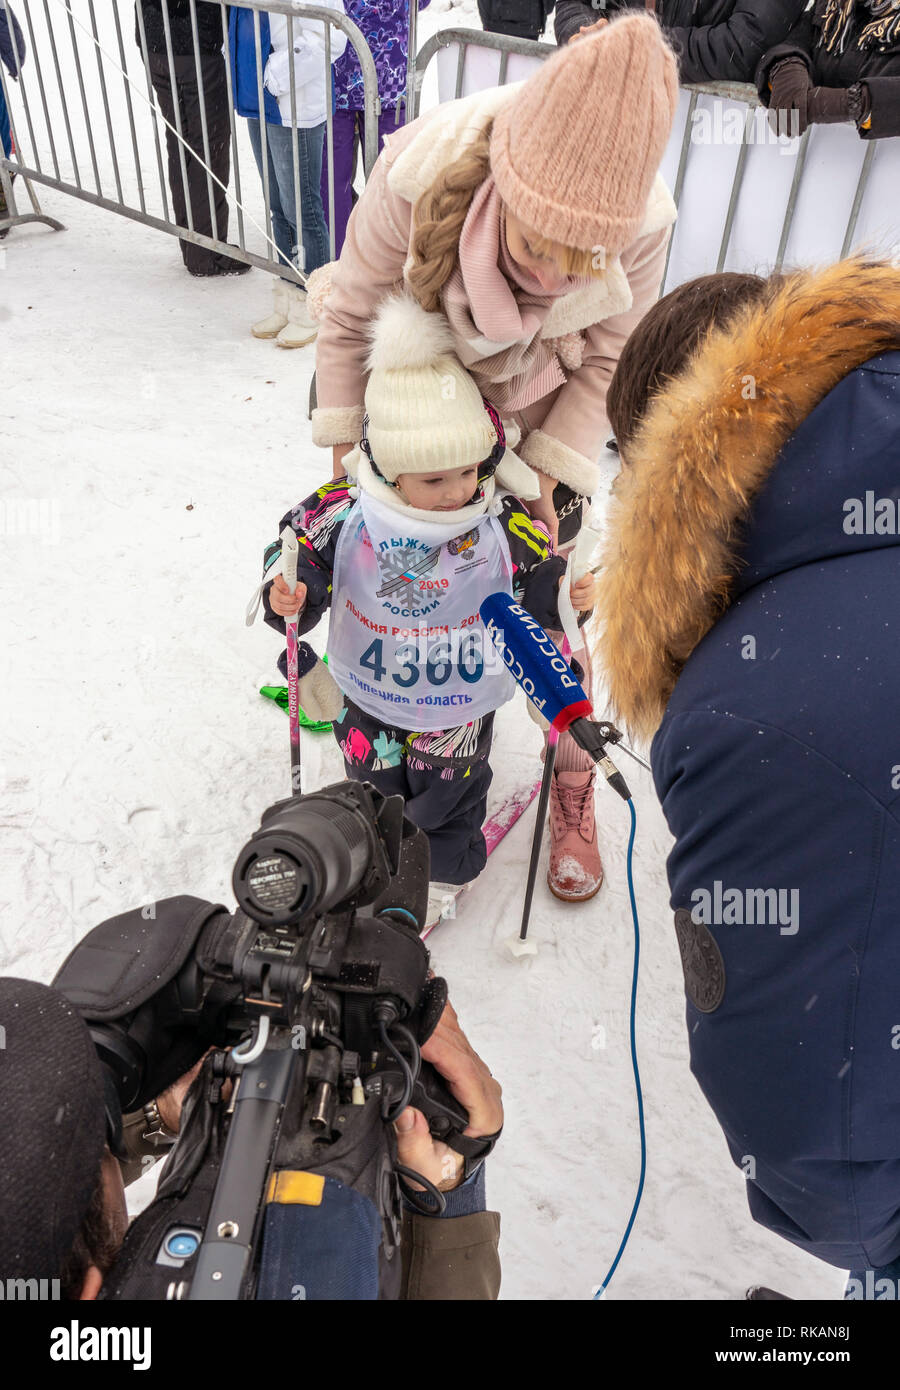 02/09/2019 Lipetsk, Russian Ski Track. Interview with the youngest participant of the ski race - Stock Image